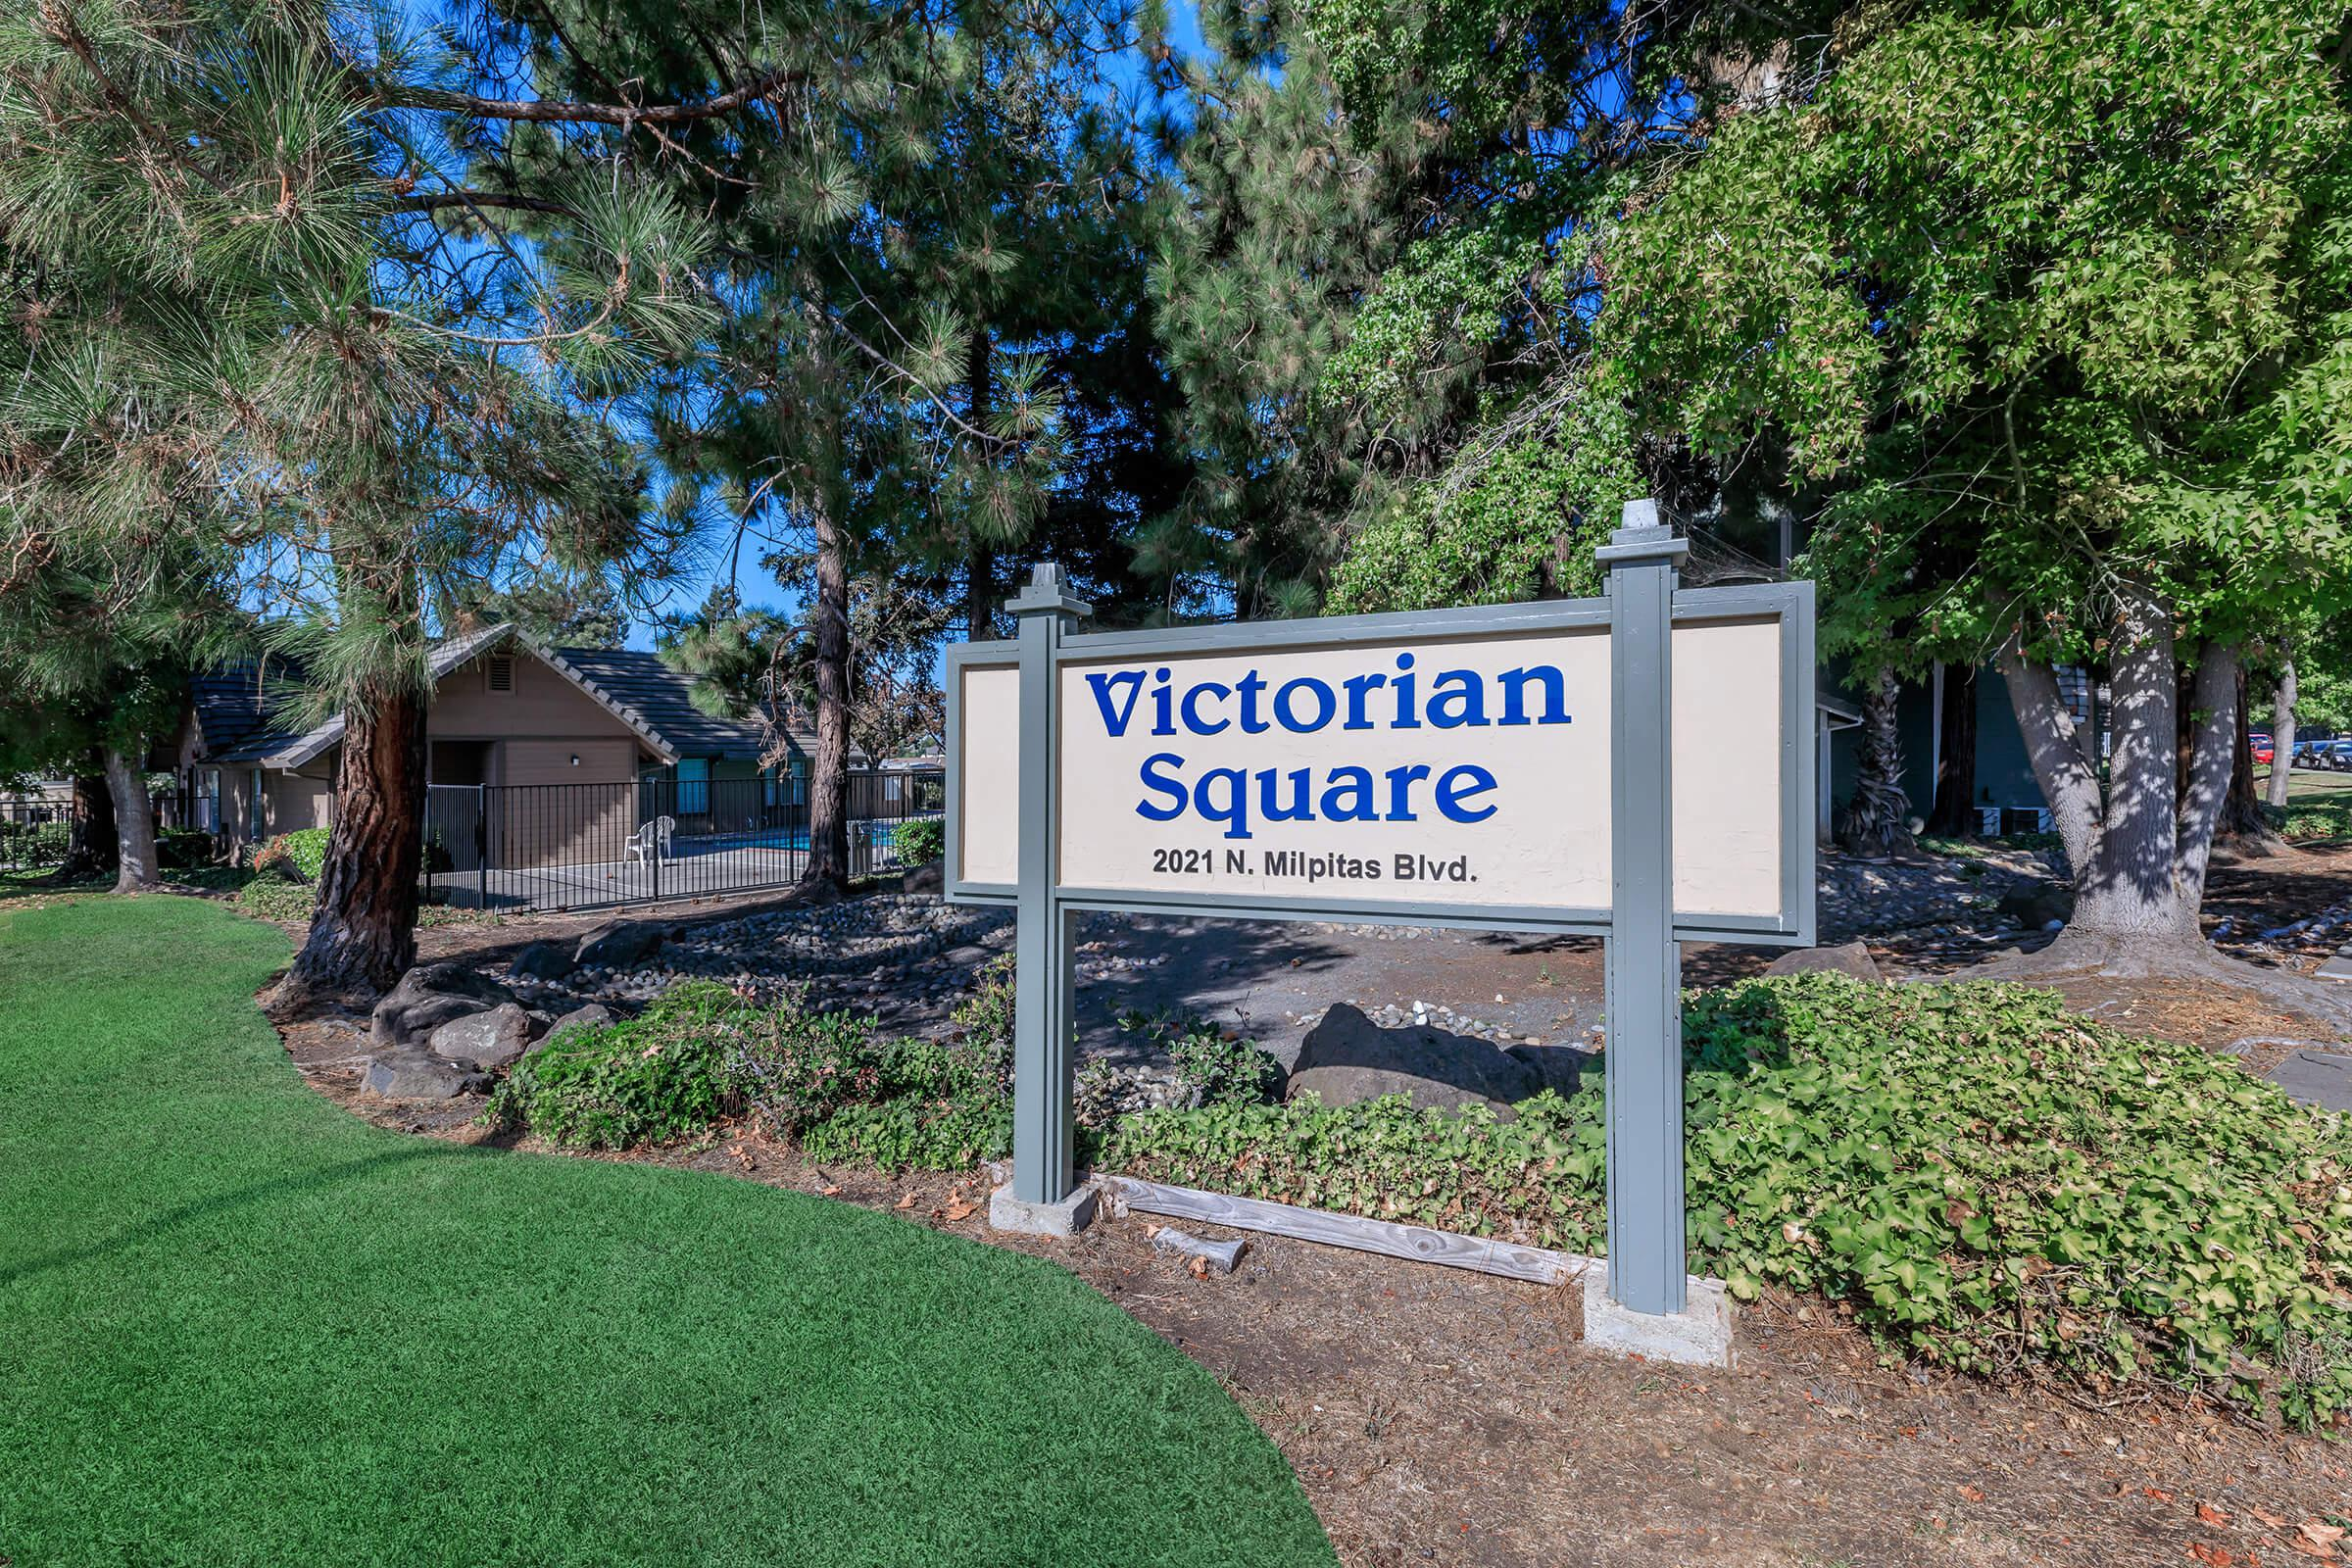 Landscaping at Victorian Square in Milpitas CA